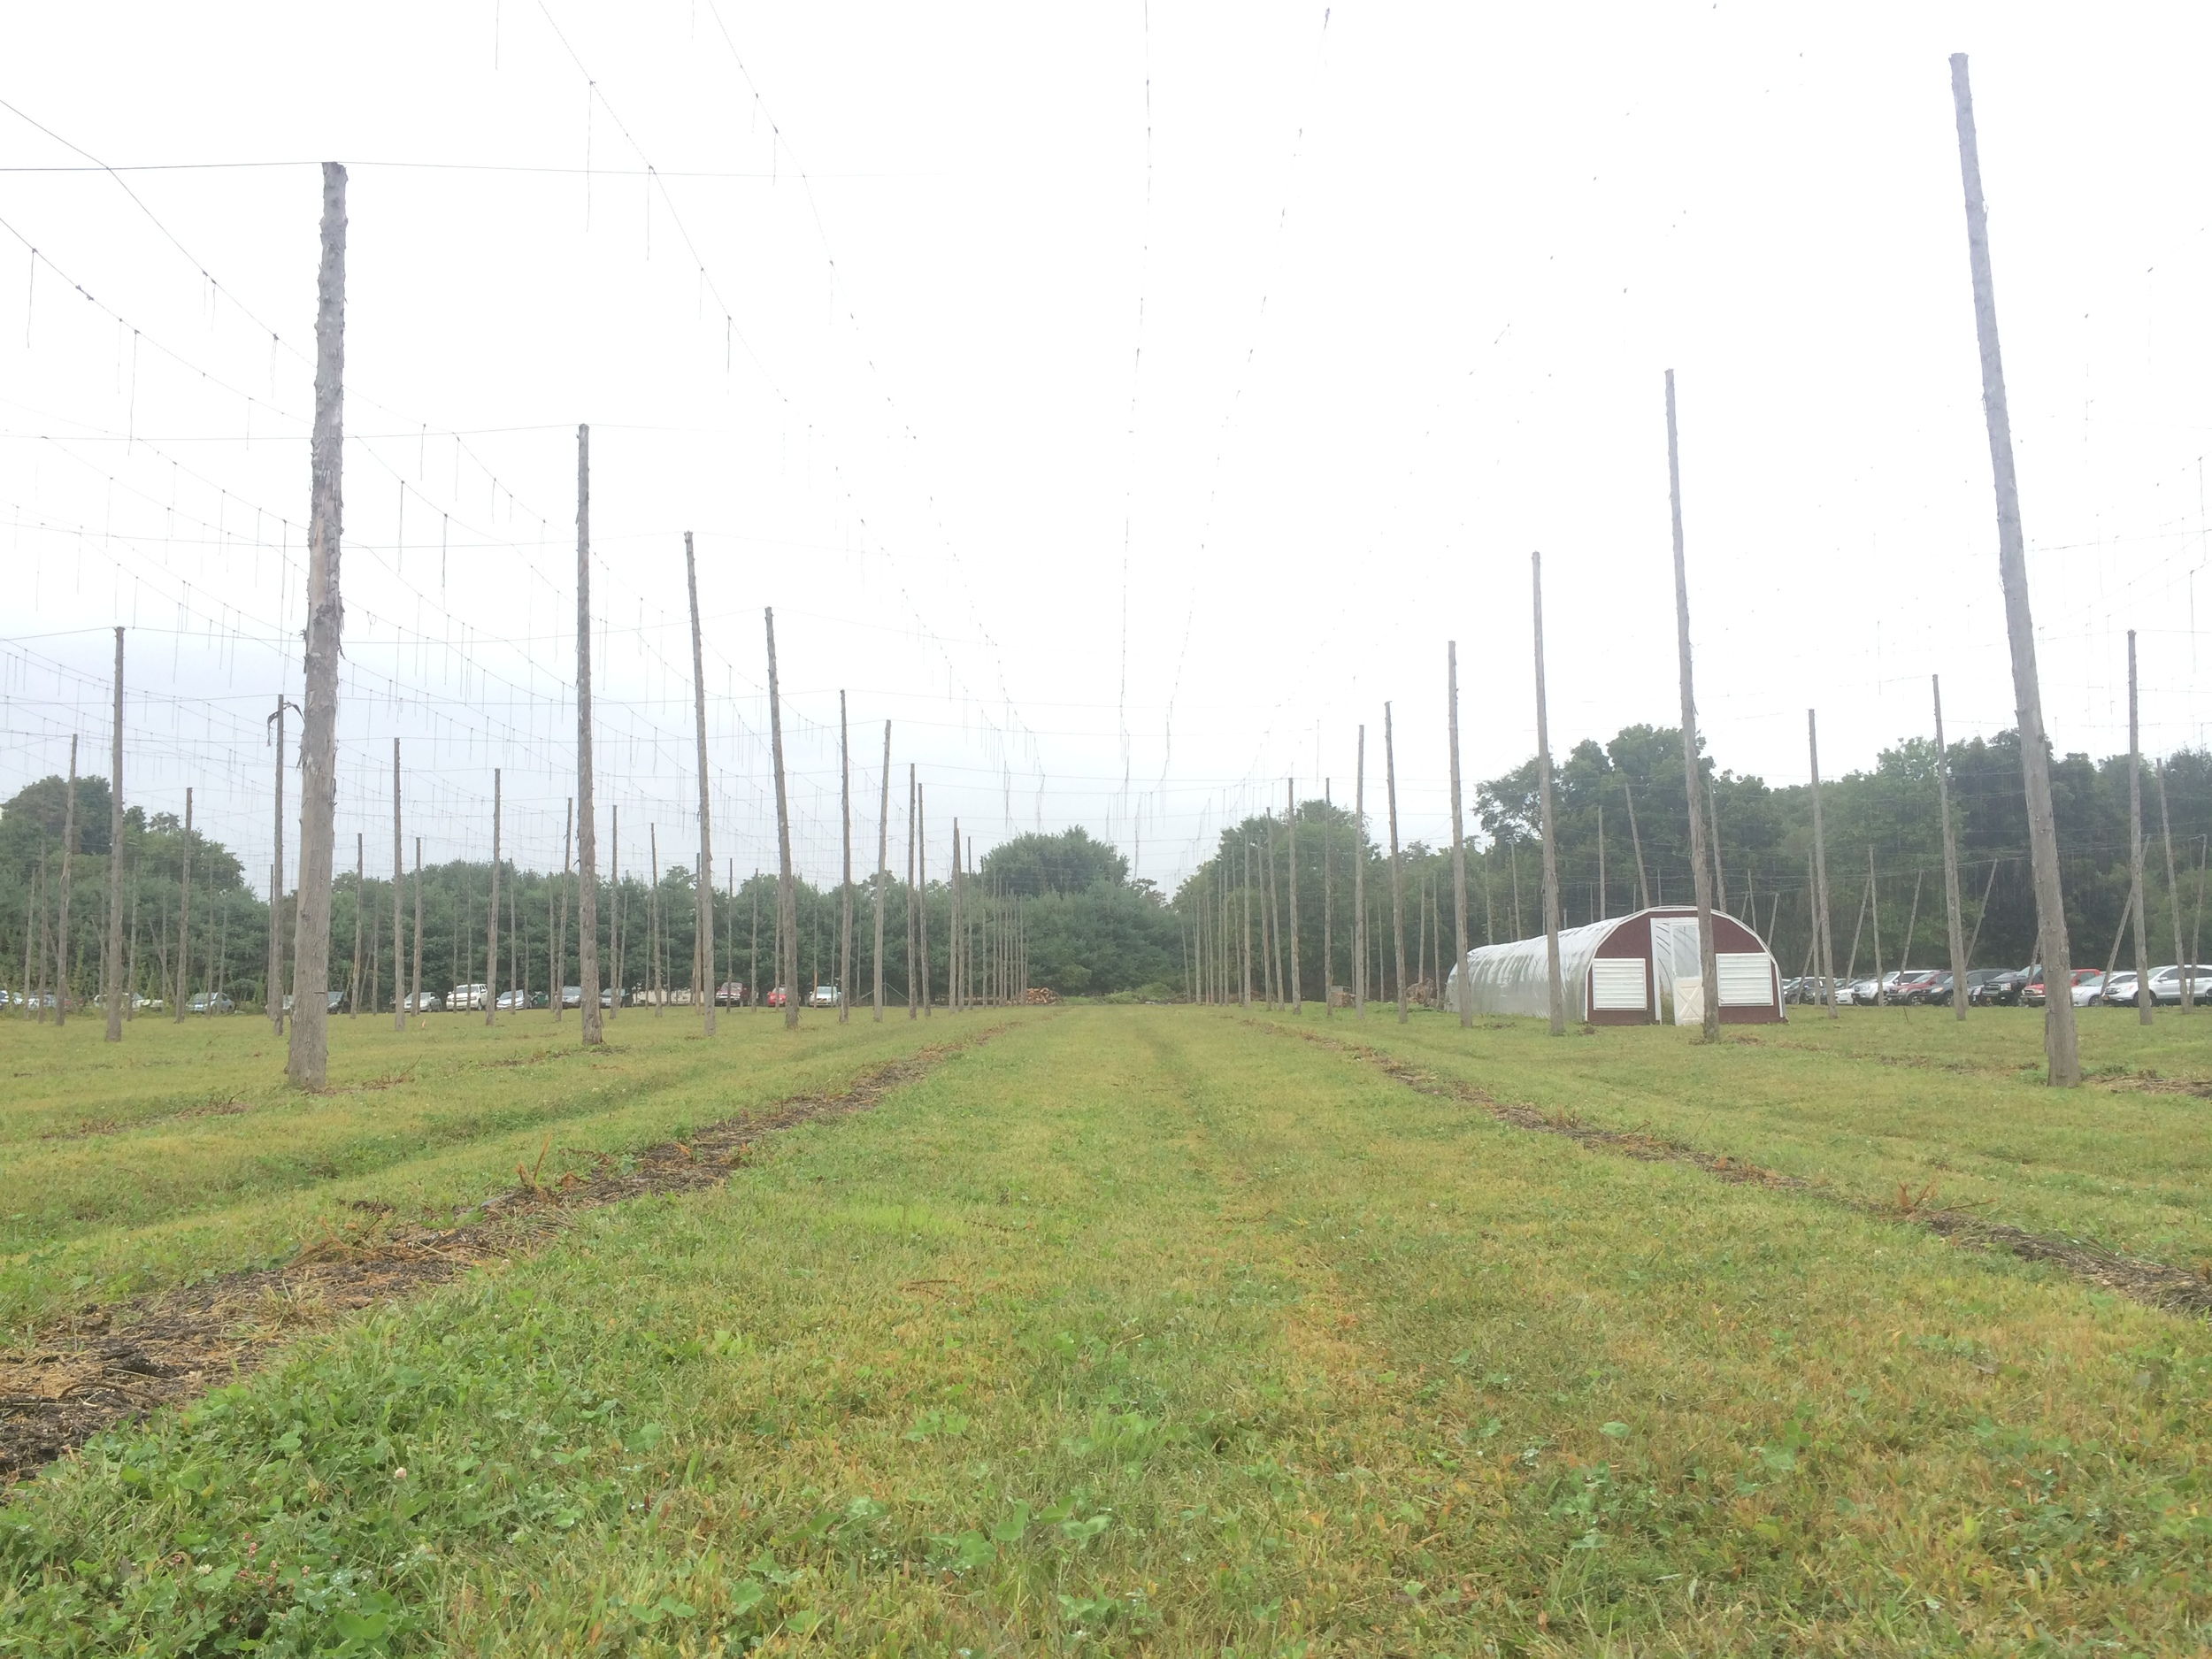 Hops are down for the season